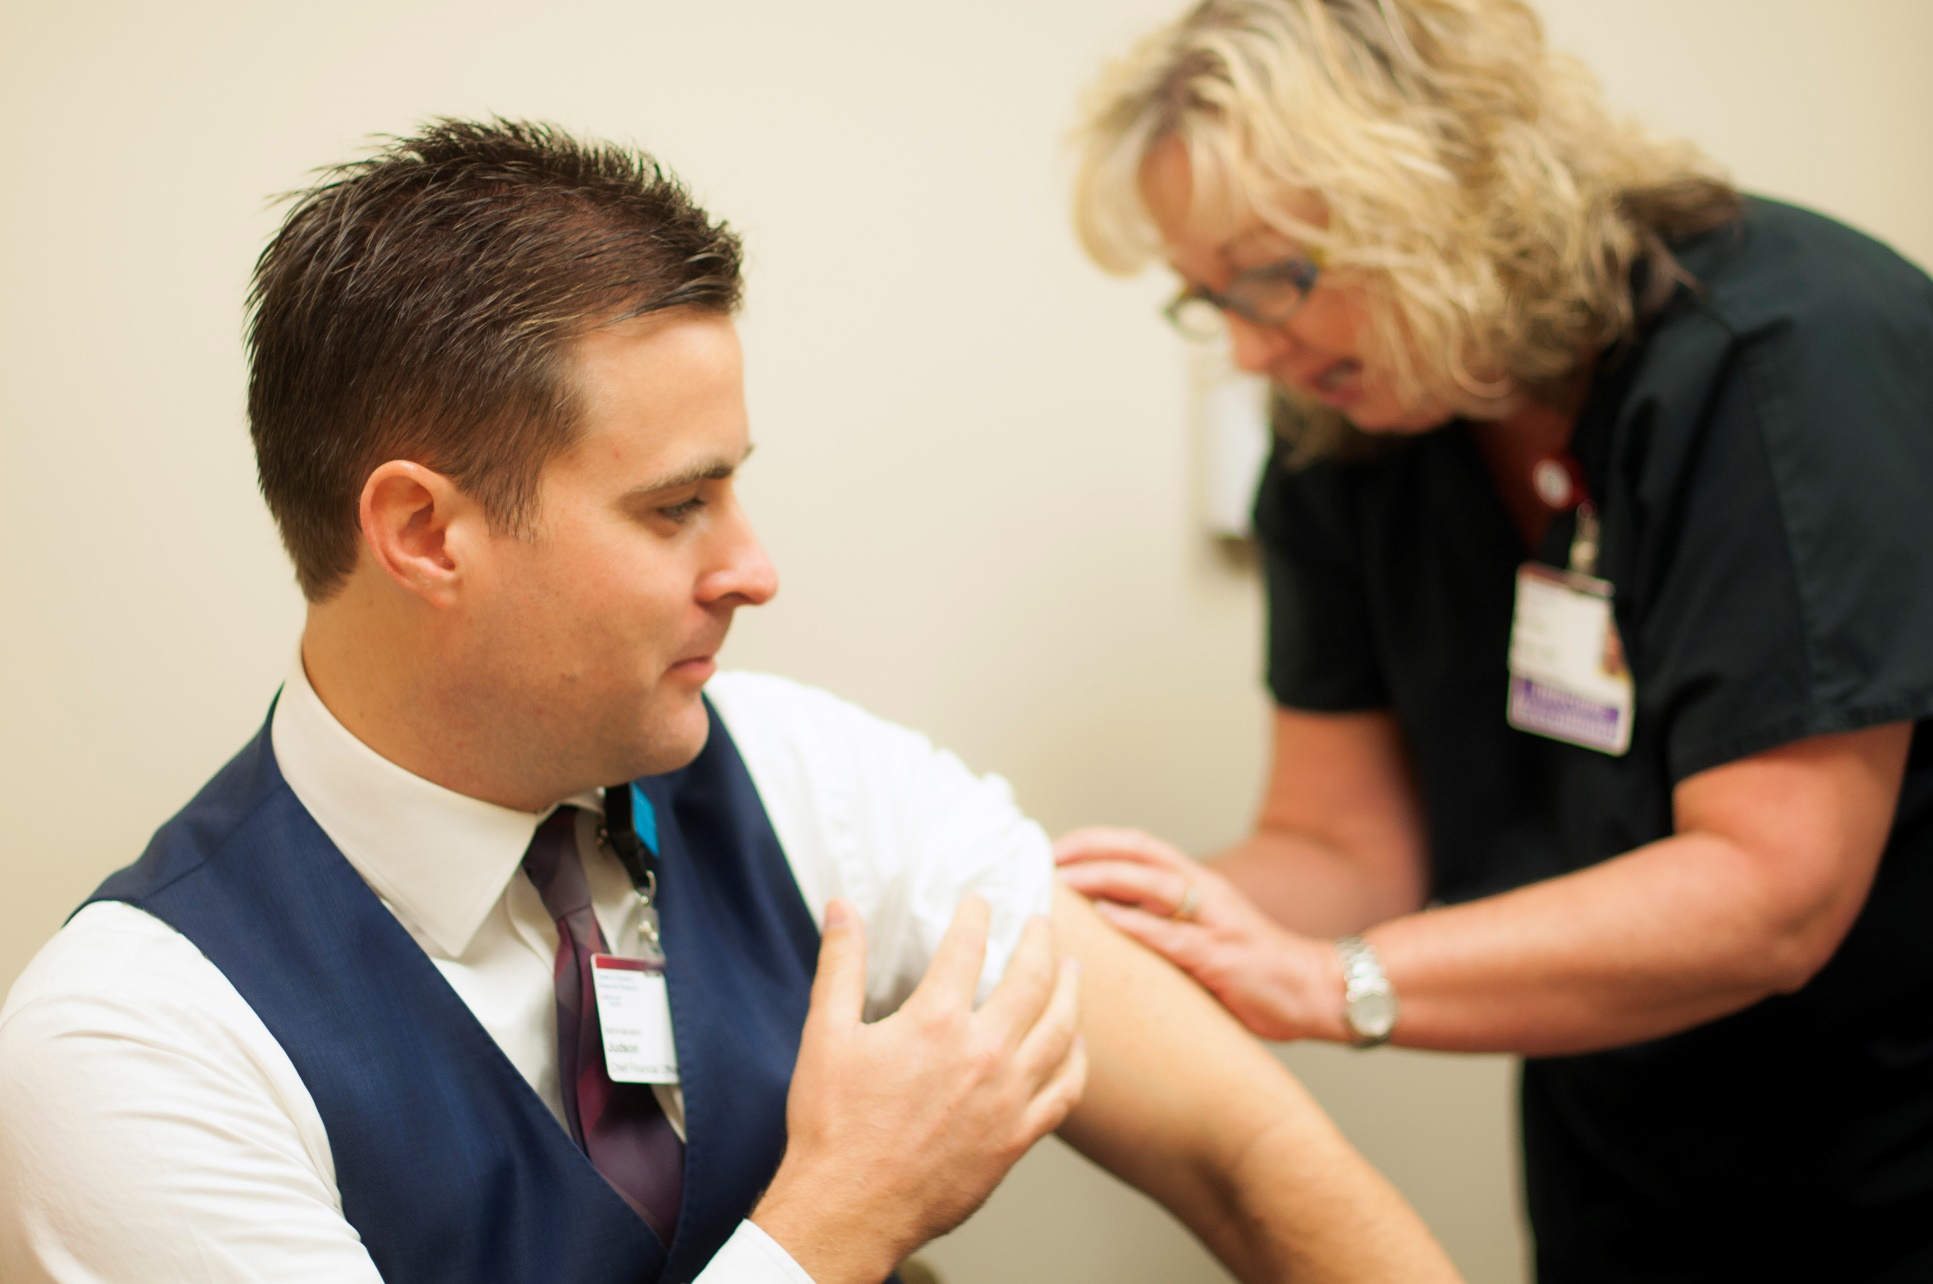 Howard Memorial CFO, Judson Howe receives a flu vaccination from Daria Fletcher, employee health nurse and infection prevention specialist. Photo courtesy of Adventist Health.